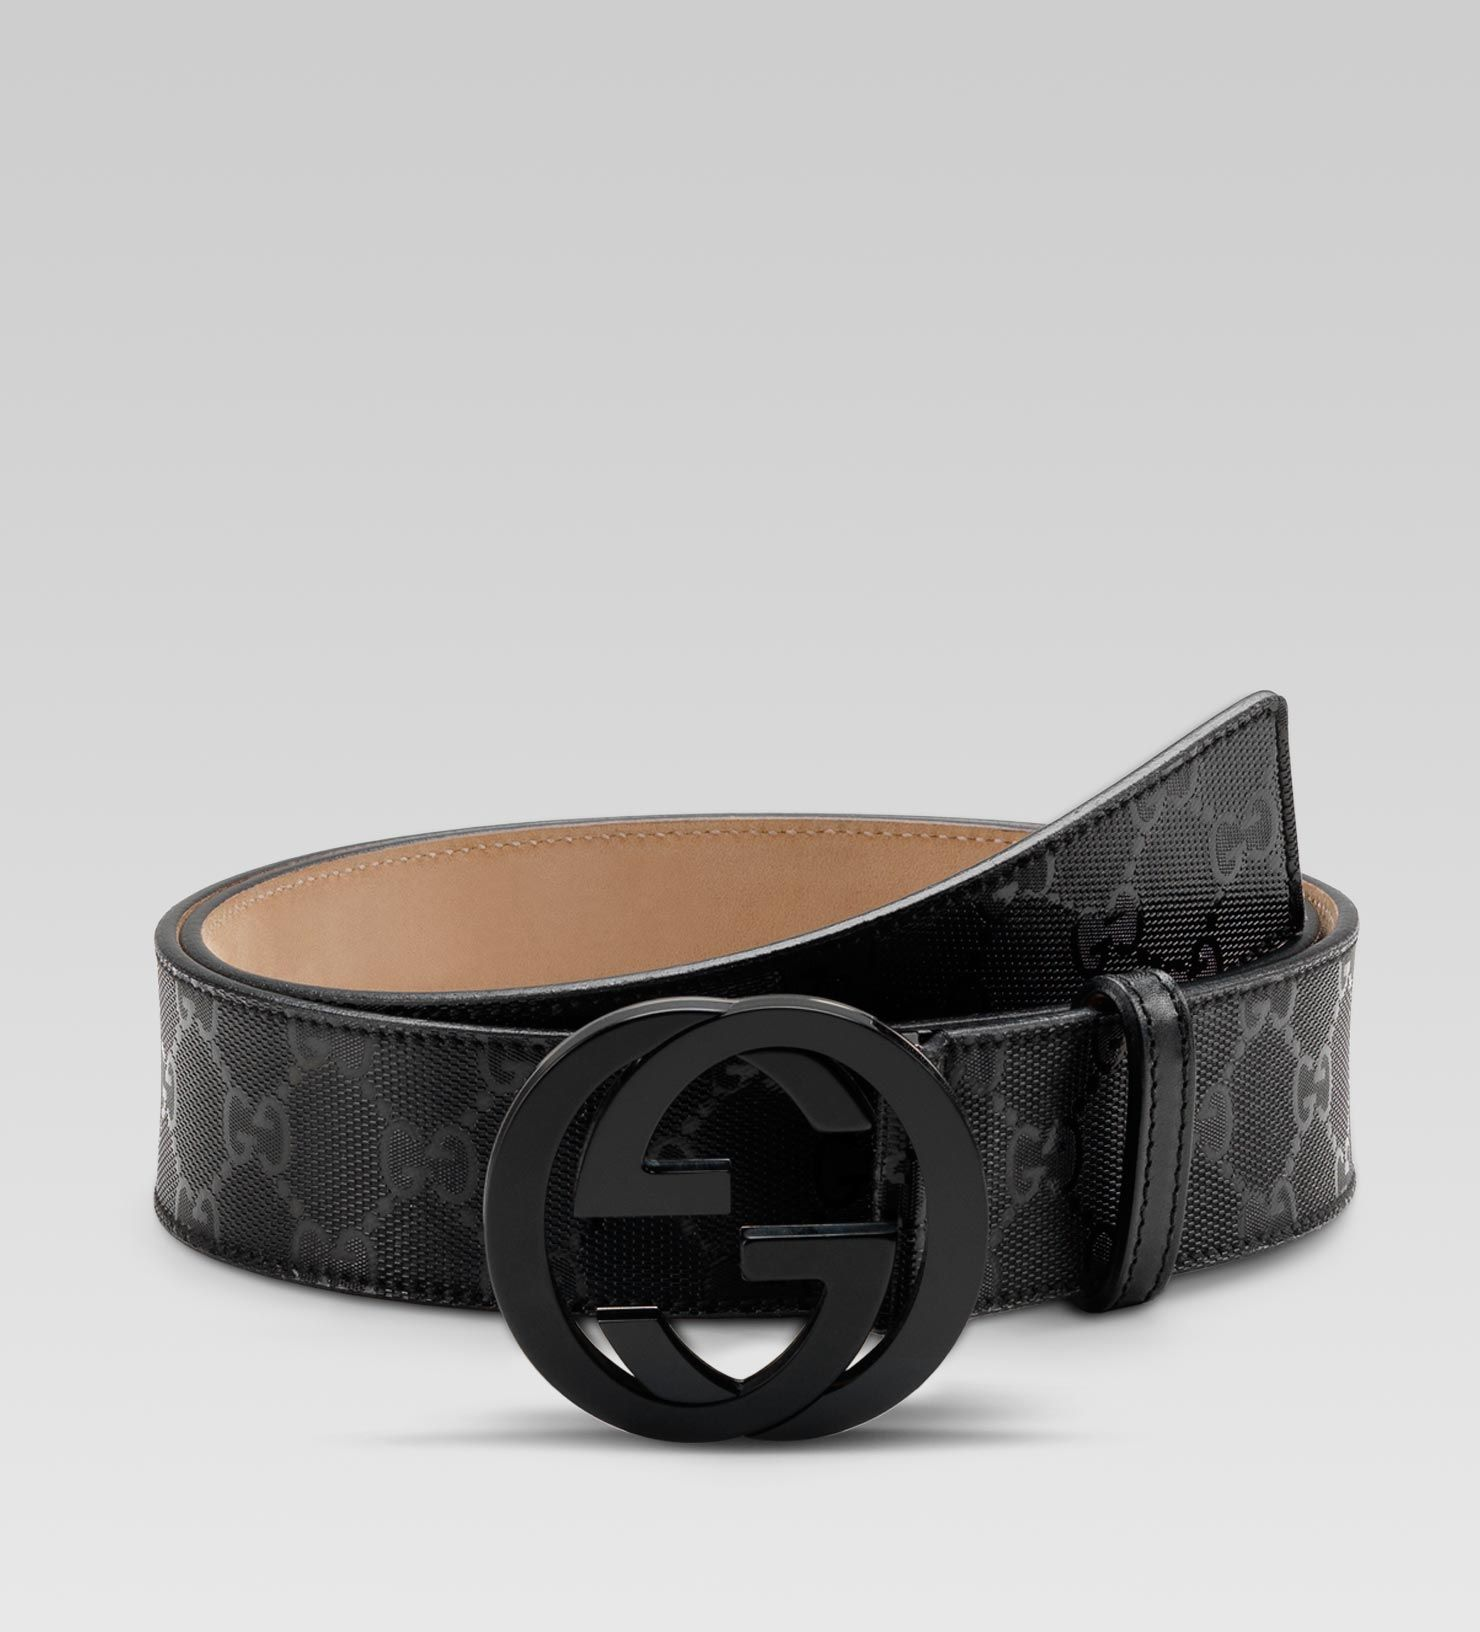 b19206642 Gucci interlocking g belt black imprime | Threads/Swag in 2019 ...